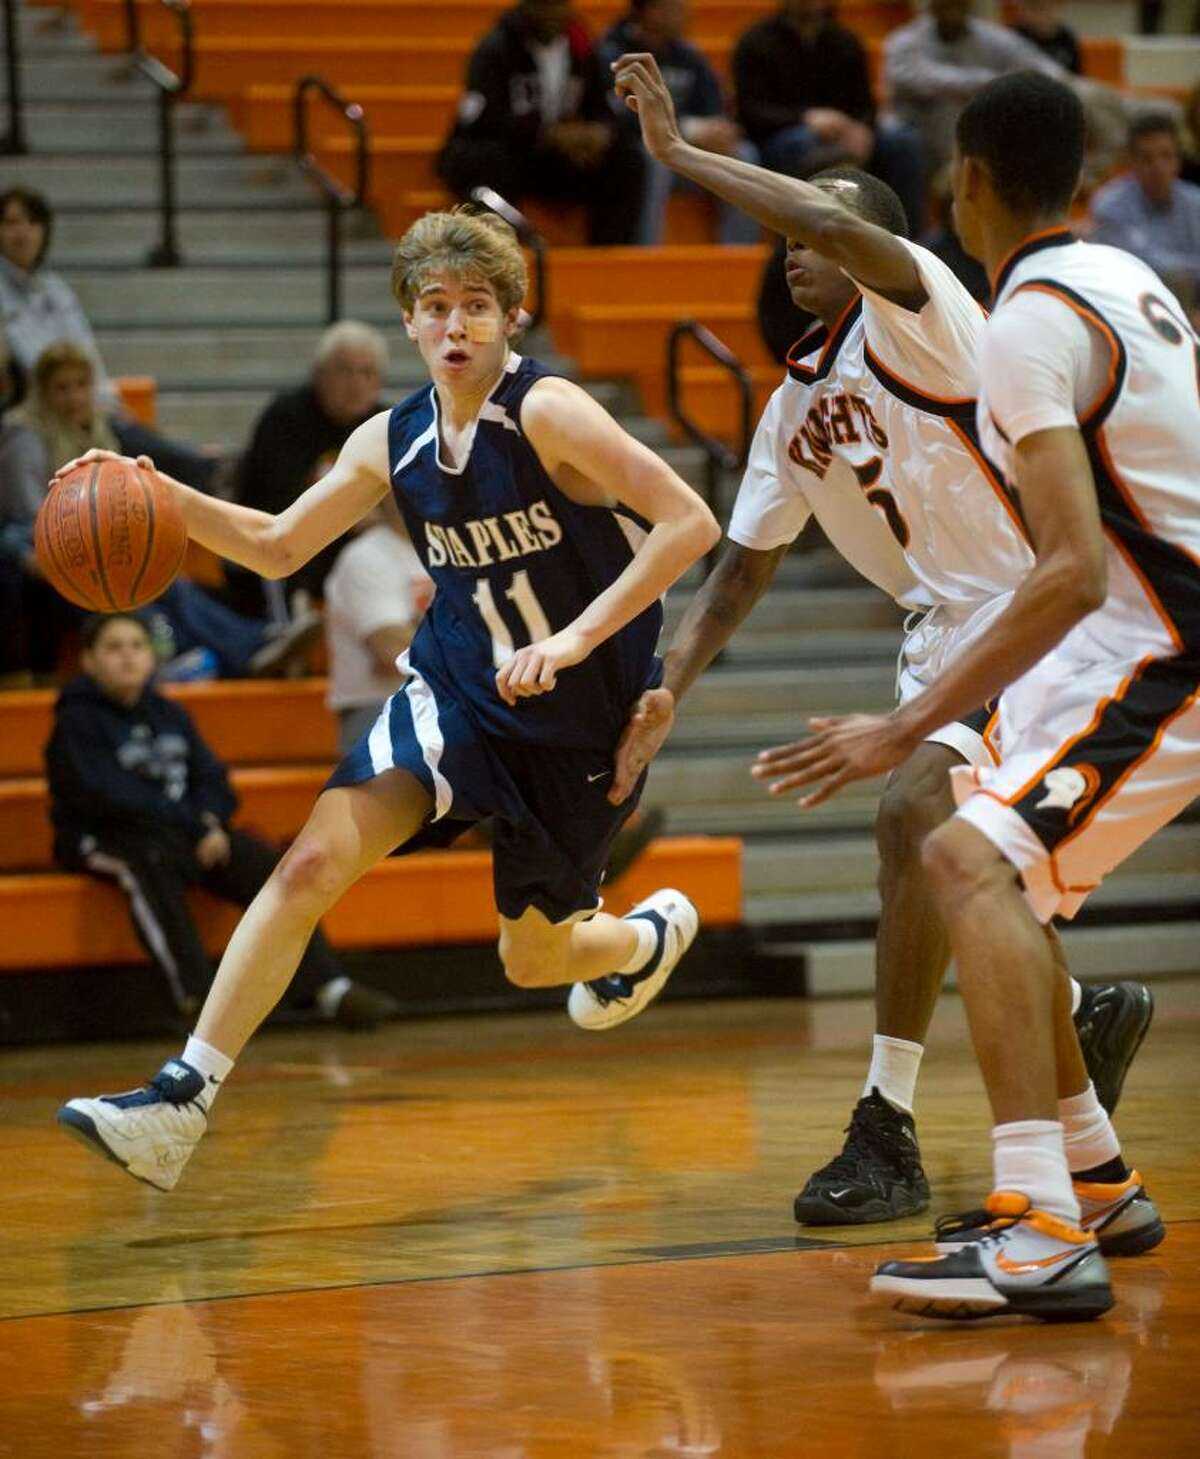 Staples' Luke Yeager drives to the hoop during an FCIAC boys basketball game at Stamford High School in Stamford, Conn. on Tuesday, Feb. 2, 2010. Staples High School defeated Stamford High School 76-70 in overtime.